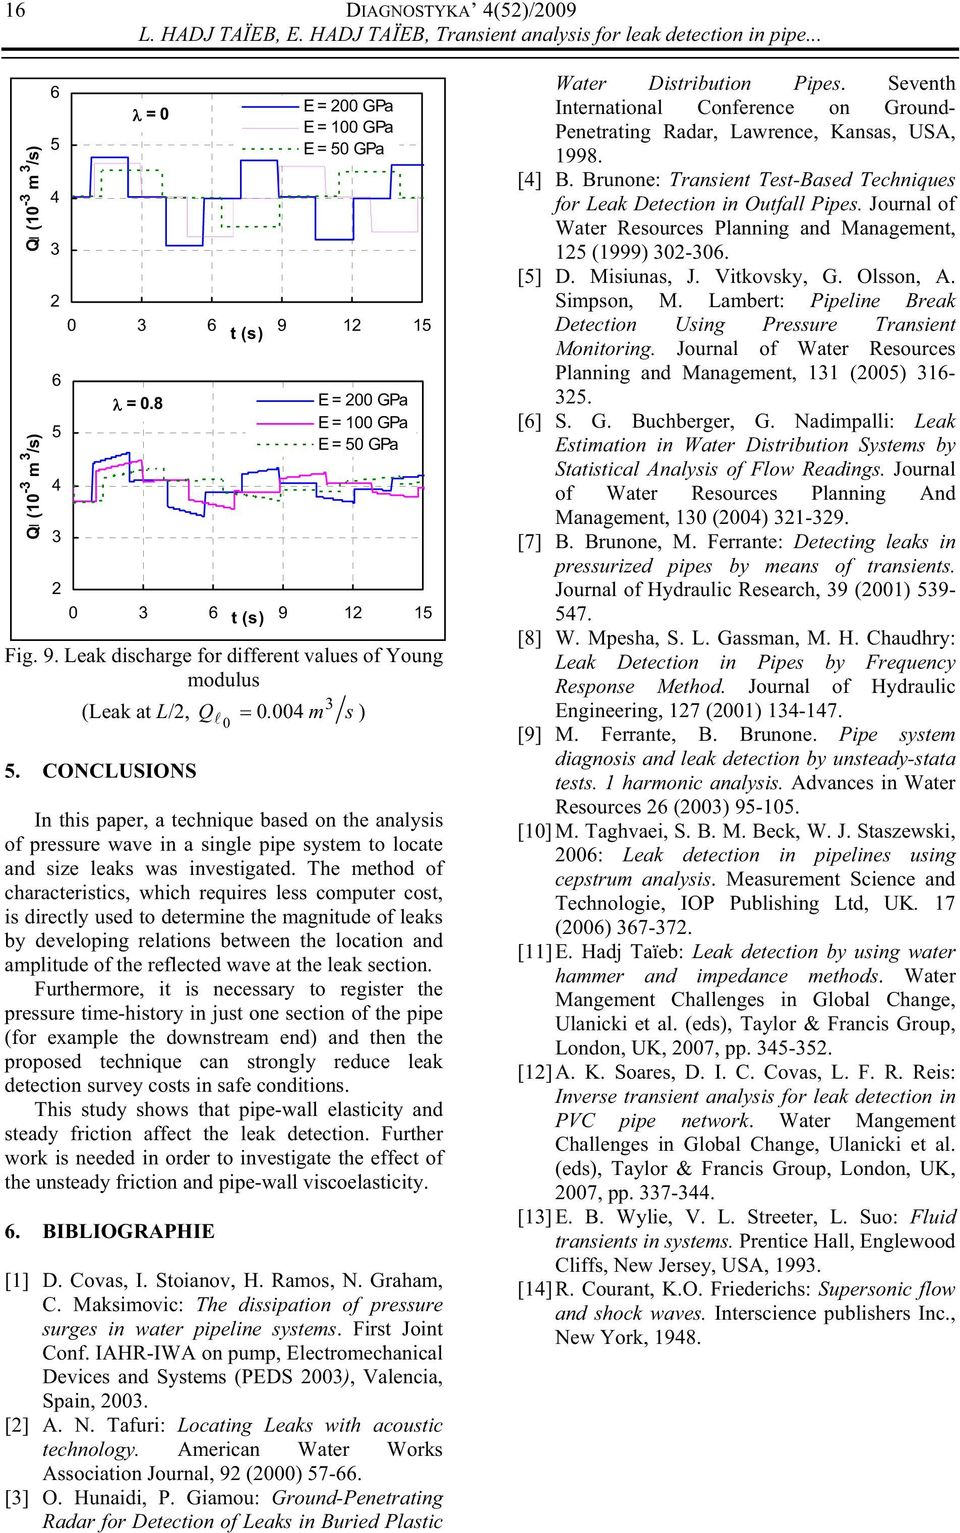 CONCLUSIONS In this paper, a technique based on the analysis of pressure wave in a single pipe system to locate and size leaks was investigated.